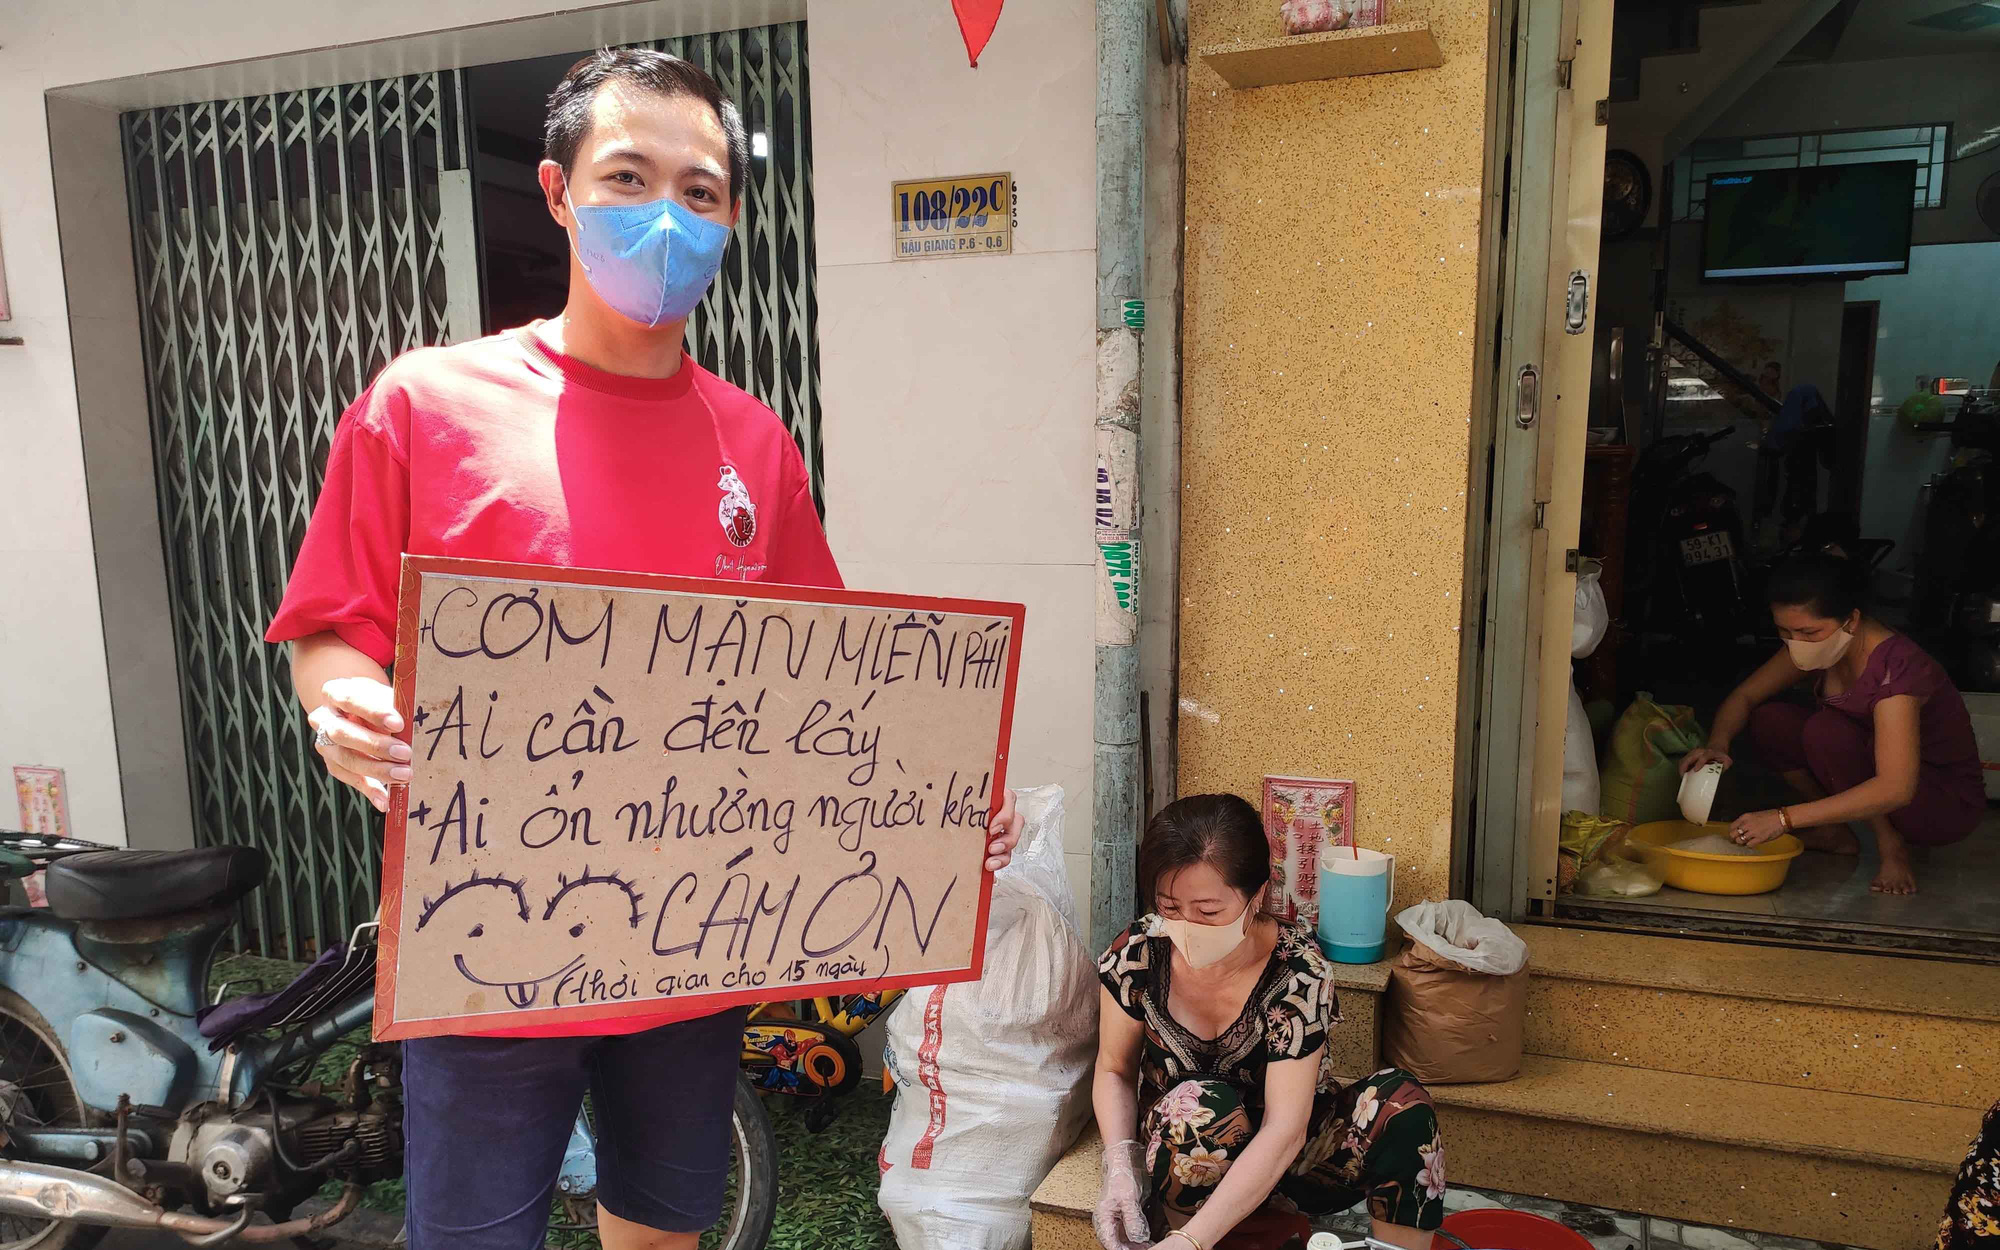 Truong Nhat Hoang Quan and his relatives prepare free meals for the needy in District 6, Ho Chi Minh City, Vietnam. The sign he's holding reads, 'Free non-vegan meals. You can take one if [you are] in need. If you are doing fine, please leave it for others.' Photo: Minh Vu / Tuoi Tre